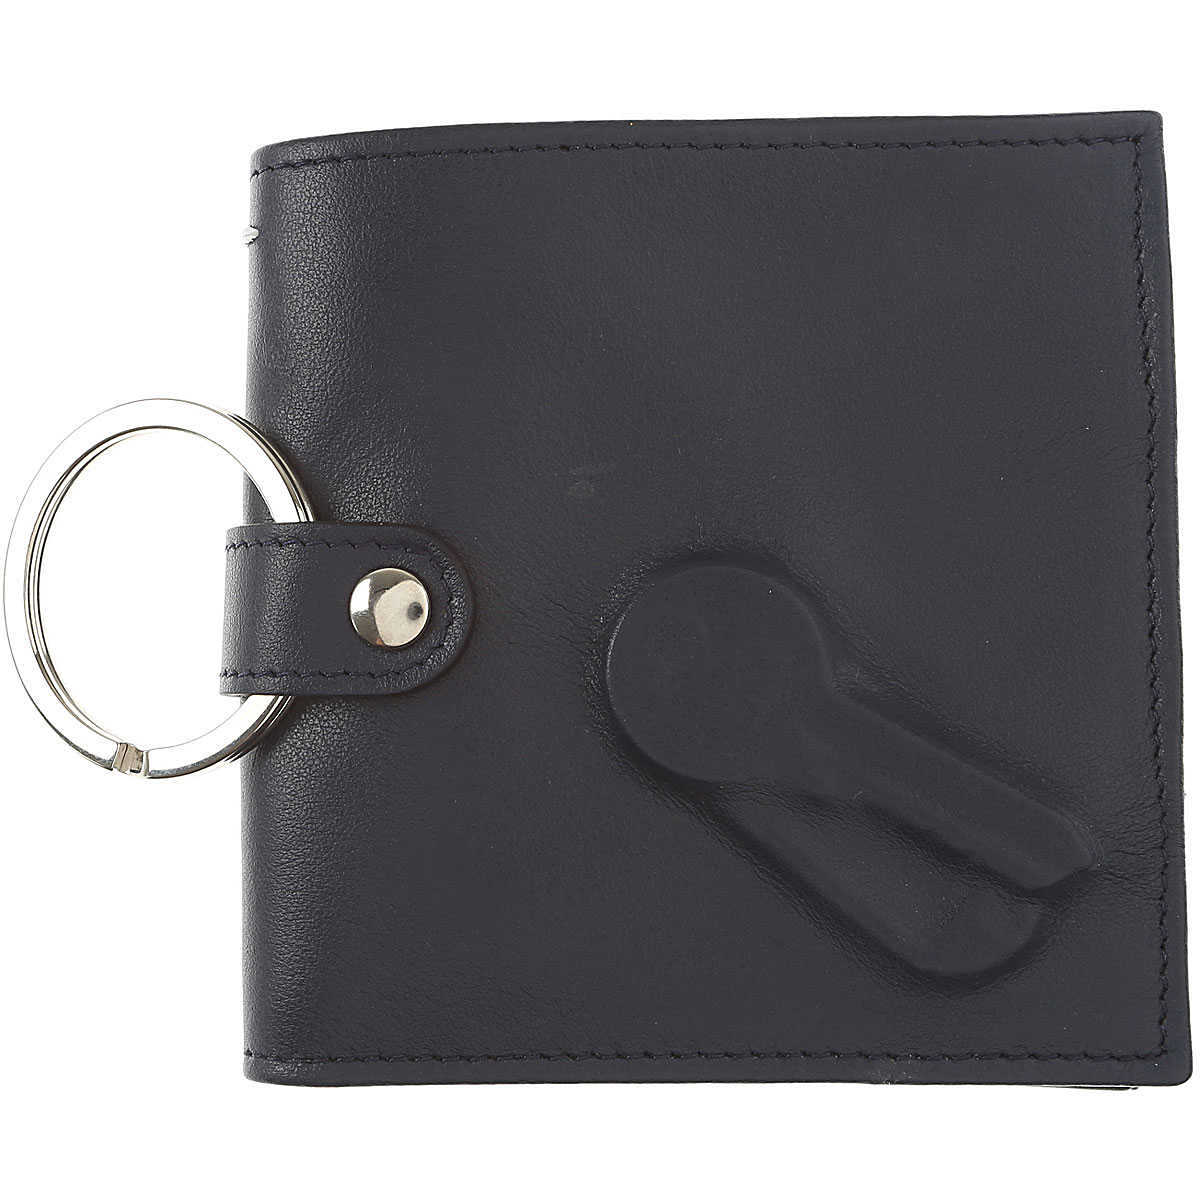 Maison Martin Margiela Mens Wallets On Sale in Outlet Dark Midnight Blue DK - GOOFASH - Mens WALLETS